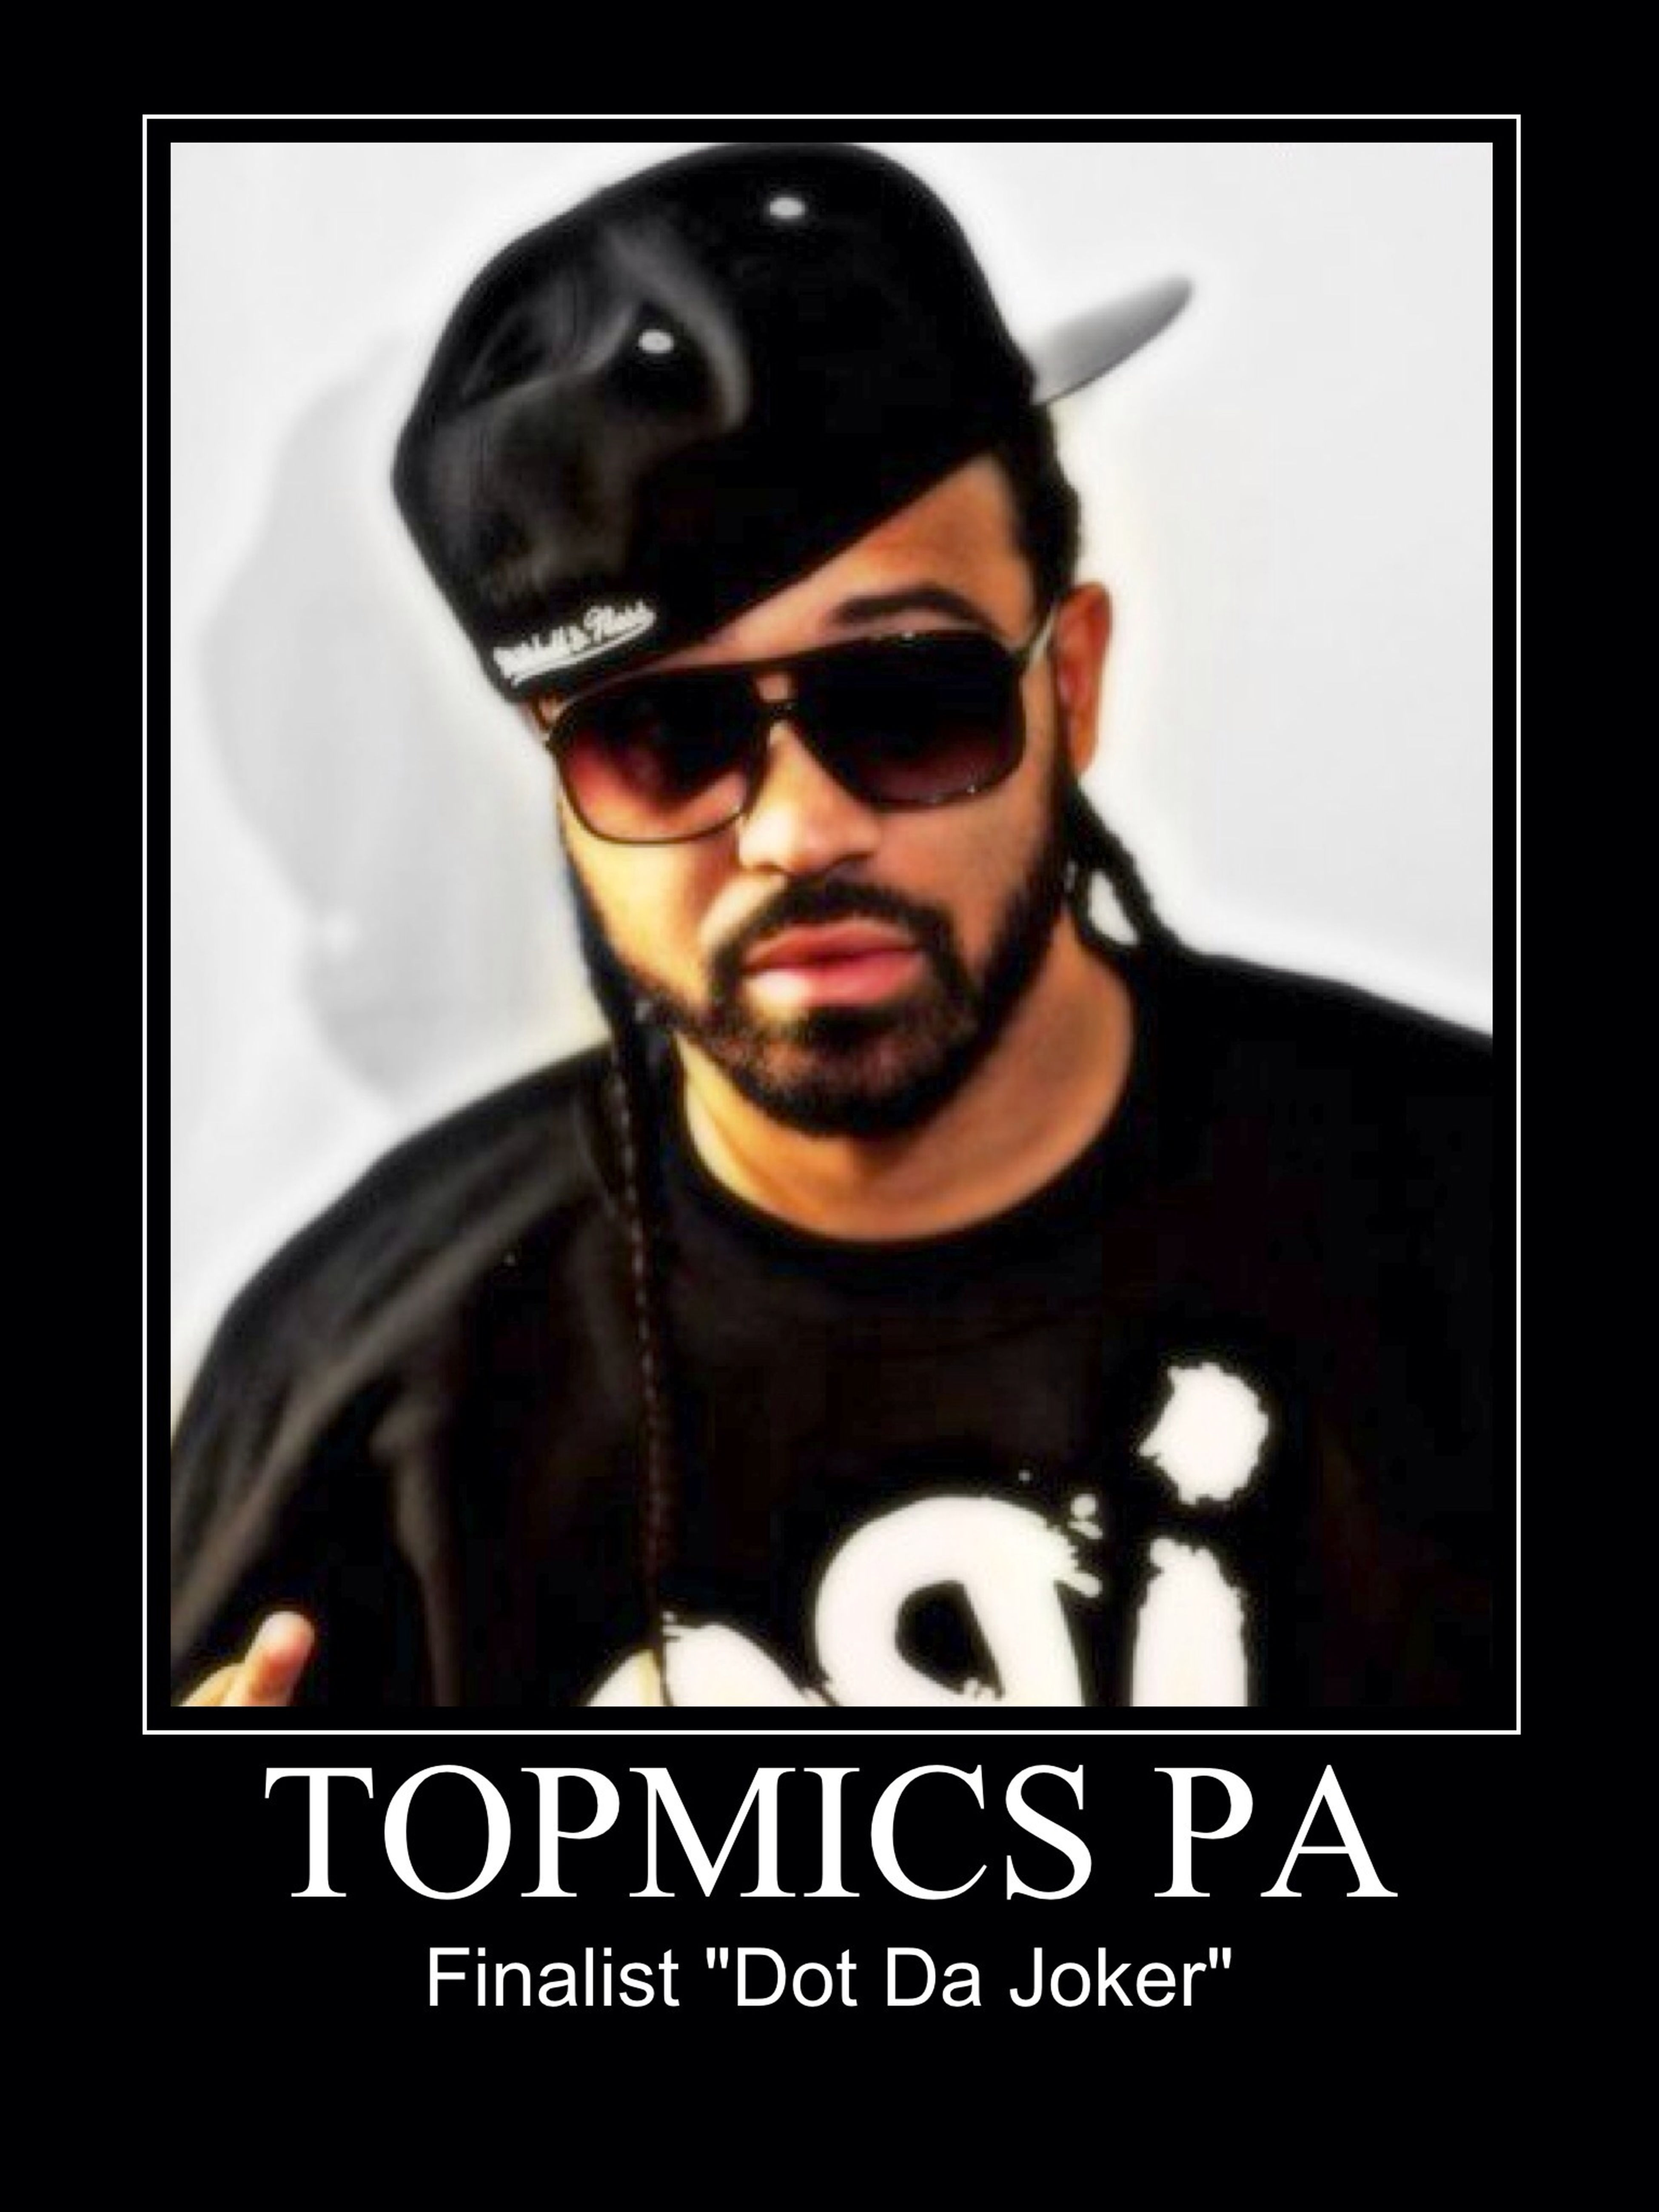 Topmics Newest Finalist From Philly